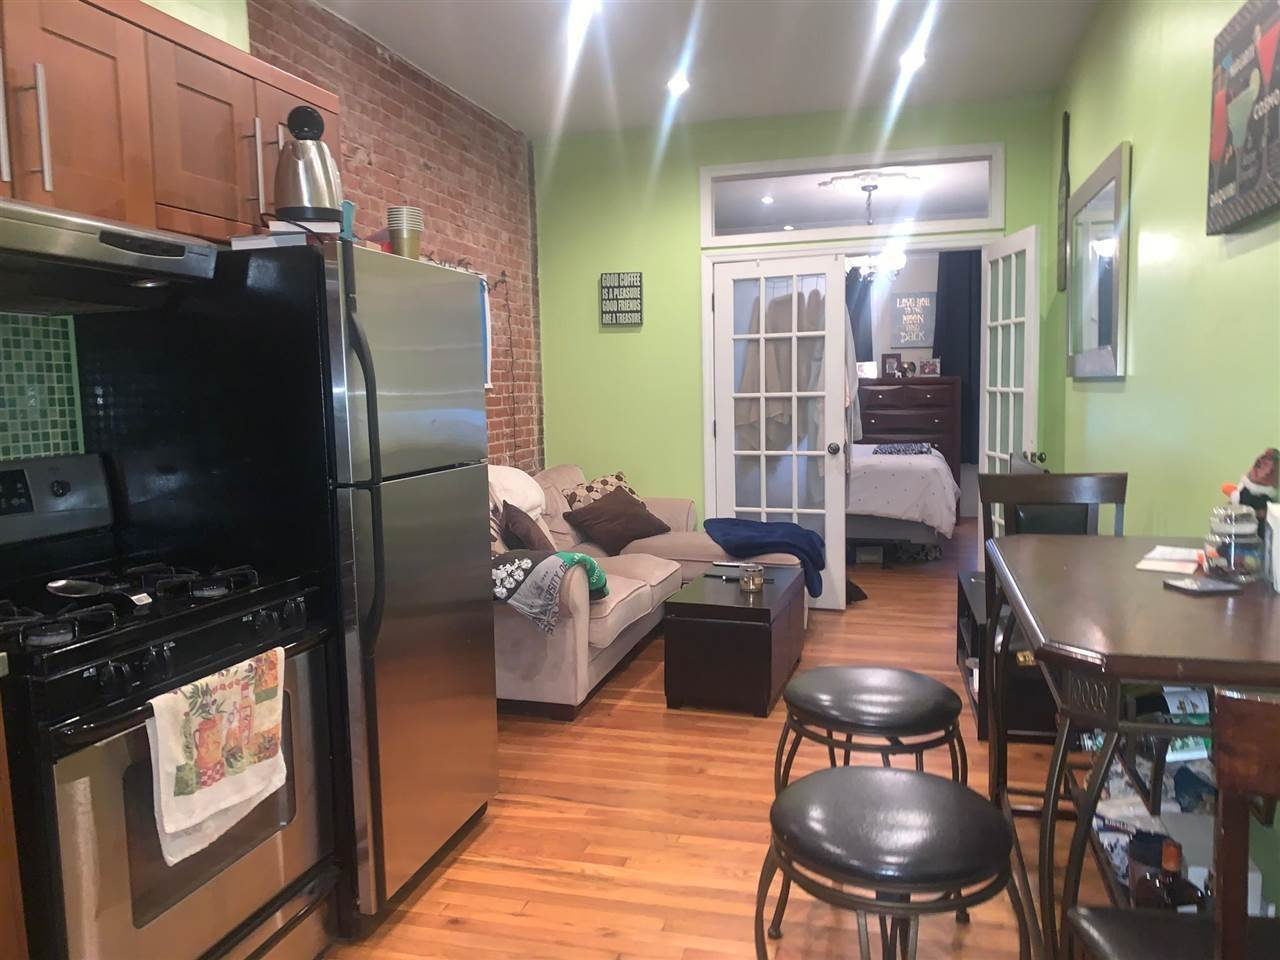 3. Single Family Home for Rent at 816 WILLOW AVENUE #4R Hoboken, New Jersey, 07030 United States